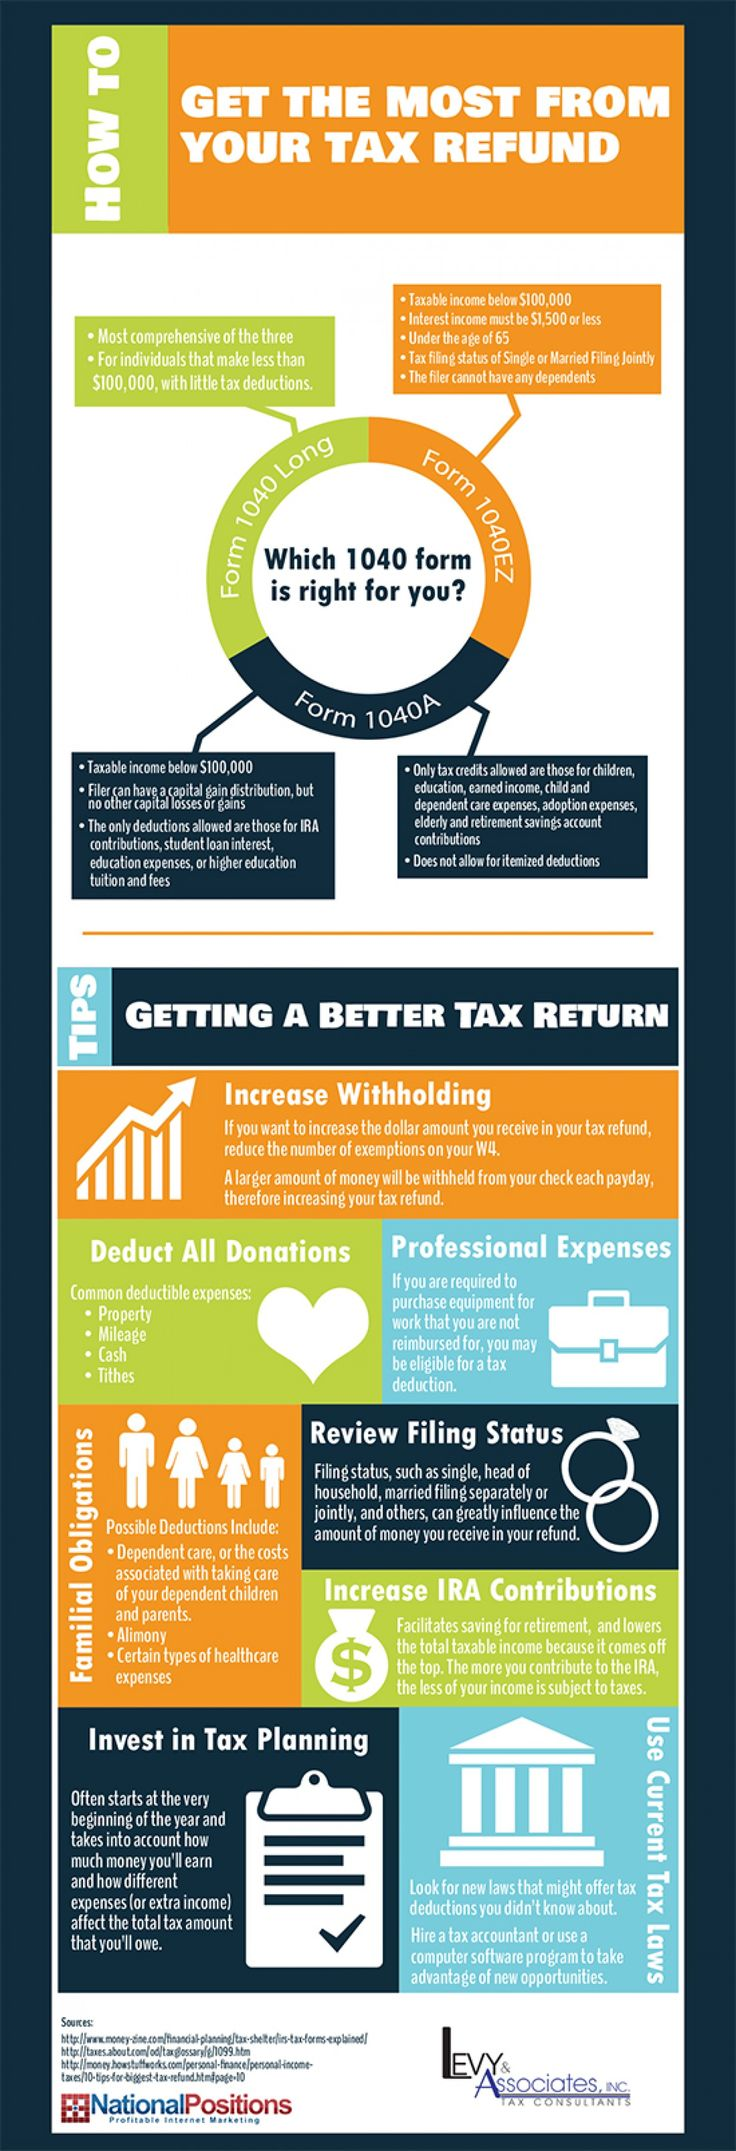 How To Get The Most From Your Tax Refund Tax Prep List: